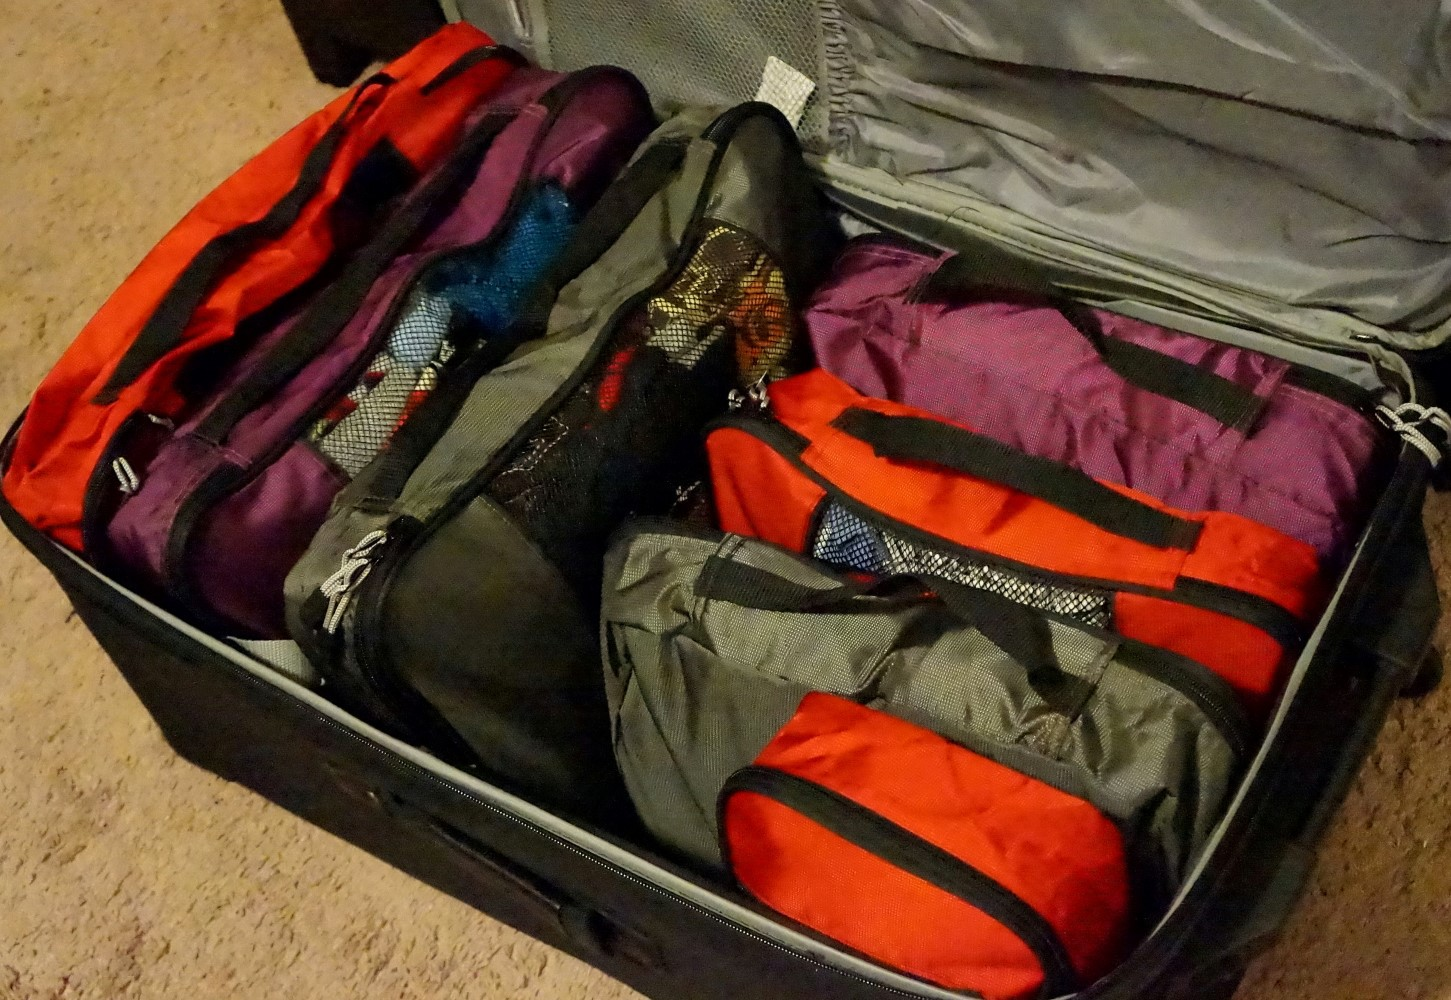 How to Pack a Suitcase! - A Mom's Take